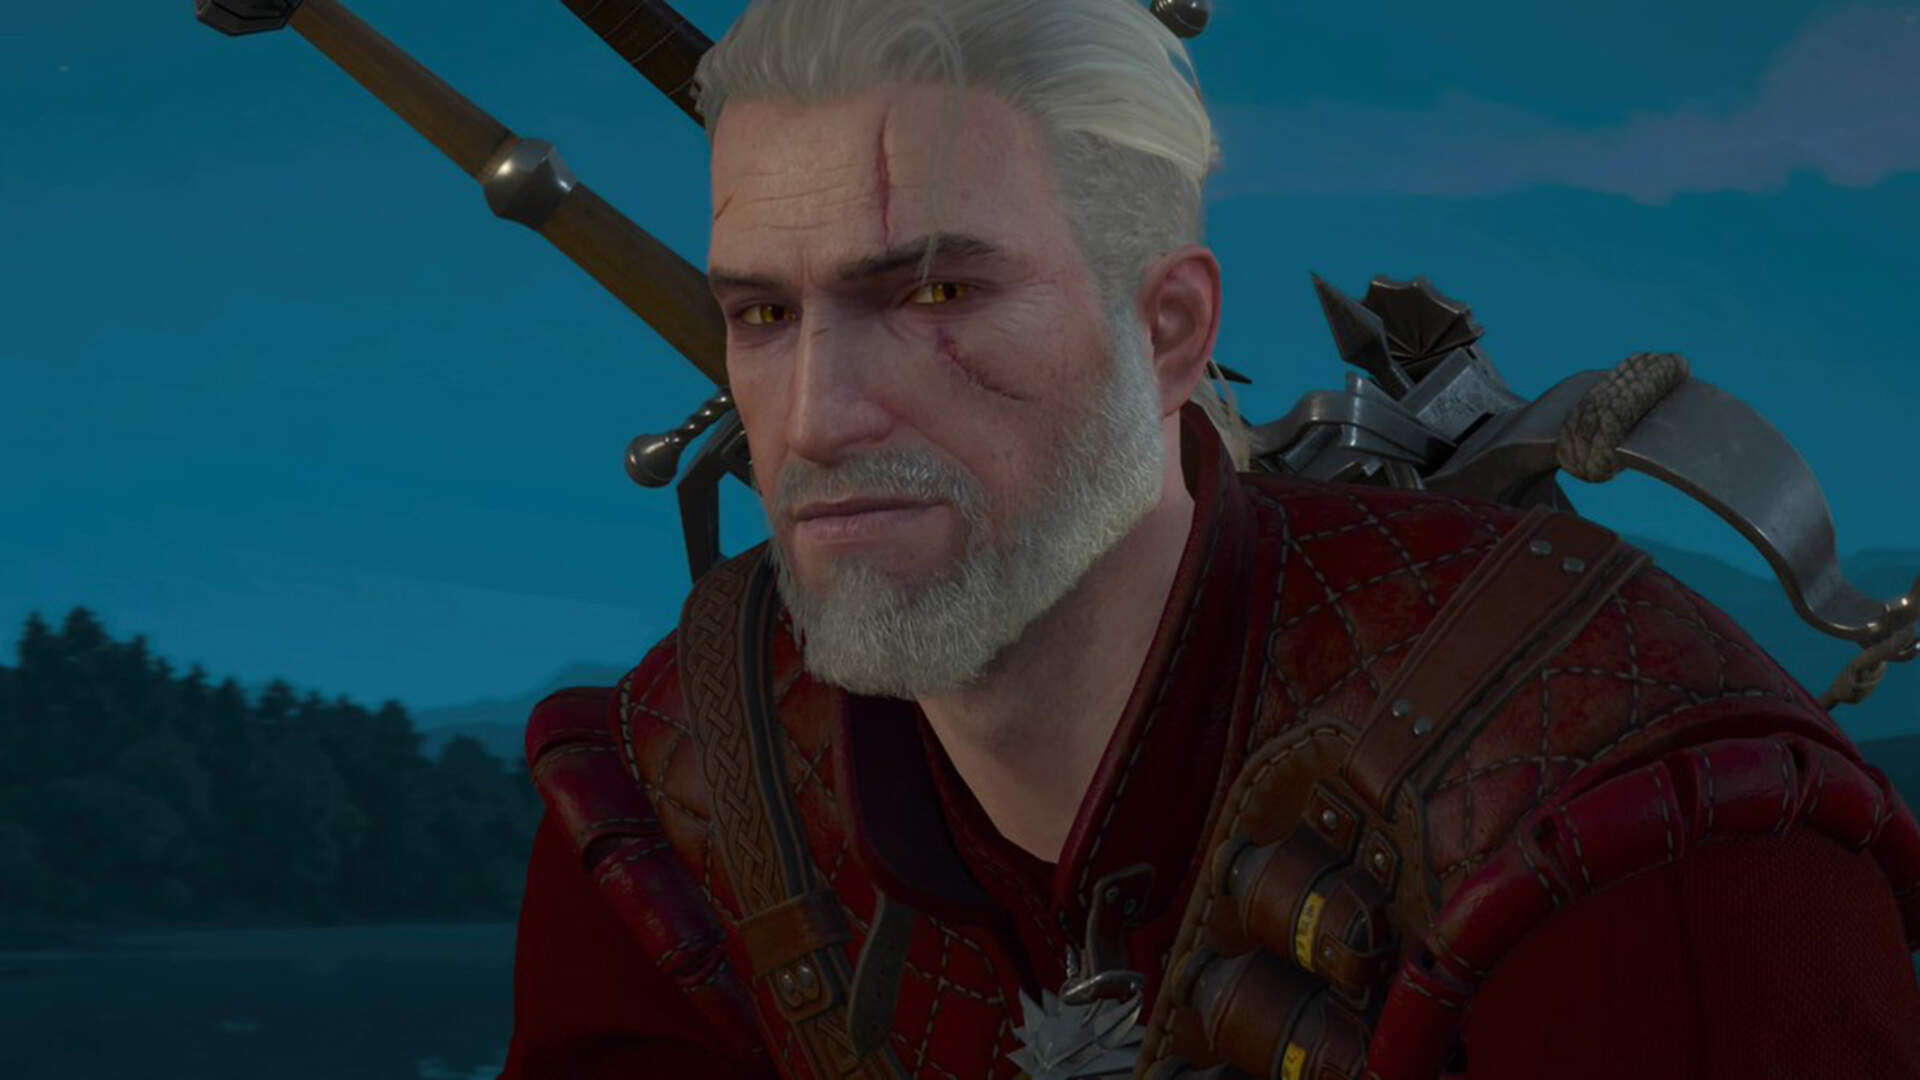 Witcher Creator Andrej Sapkowksi Still Has Zero Interest in Playing the Games